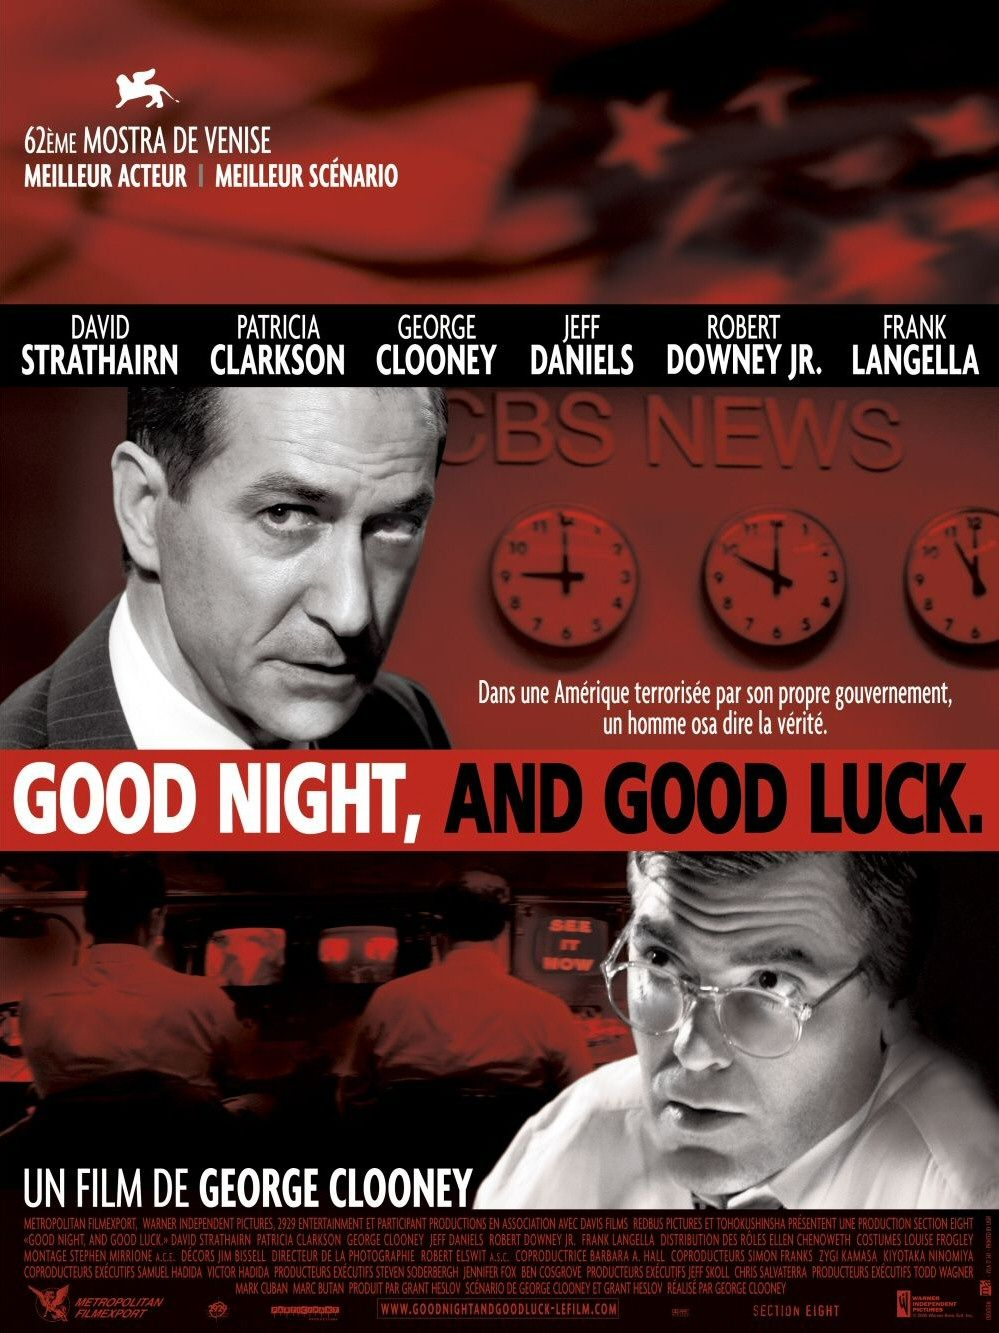 Good Night and Good Luck (2005): Cacería de Brujas y Pánico Moral —  RacioCine